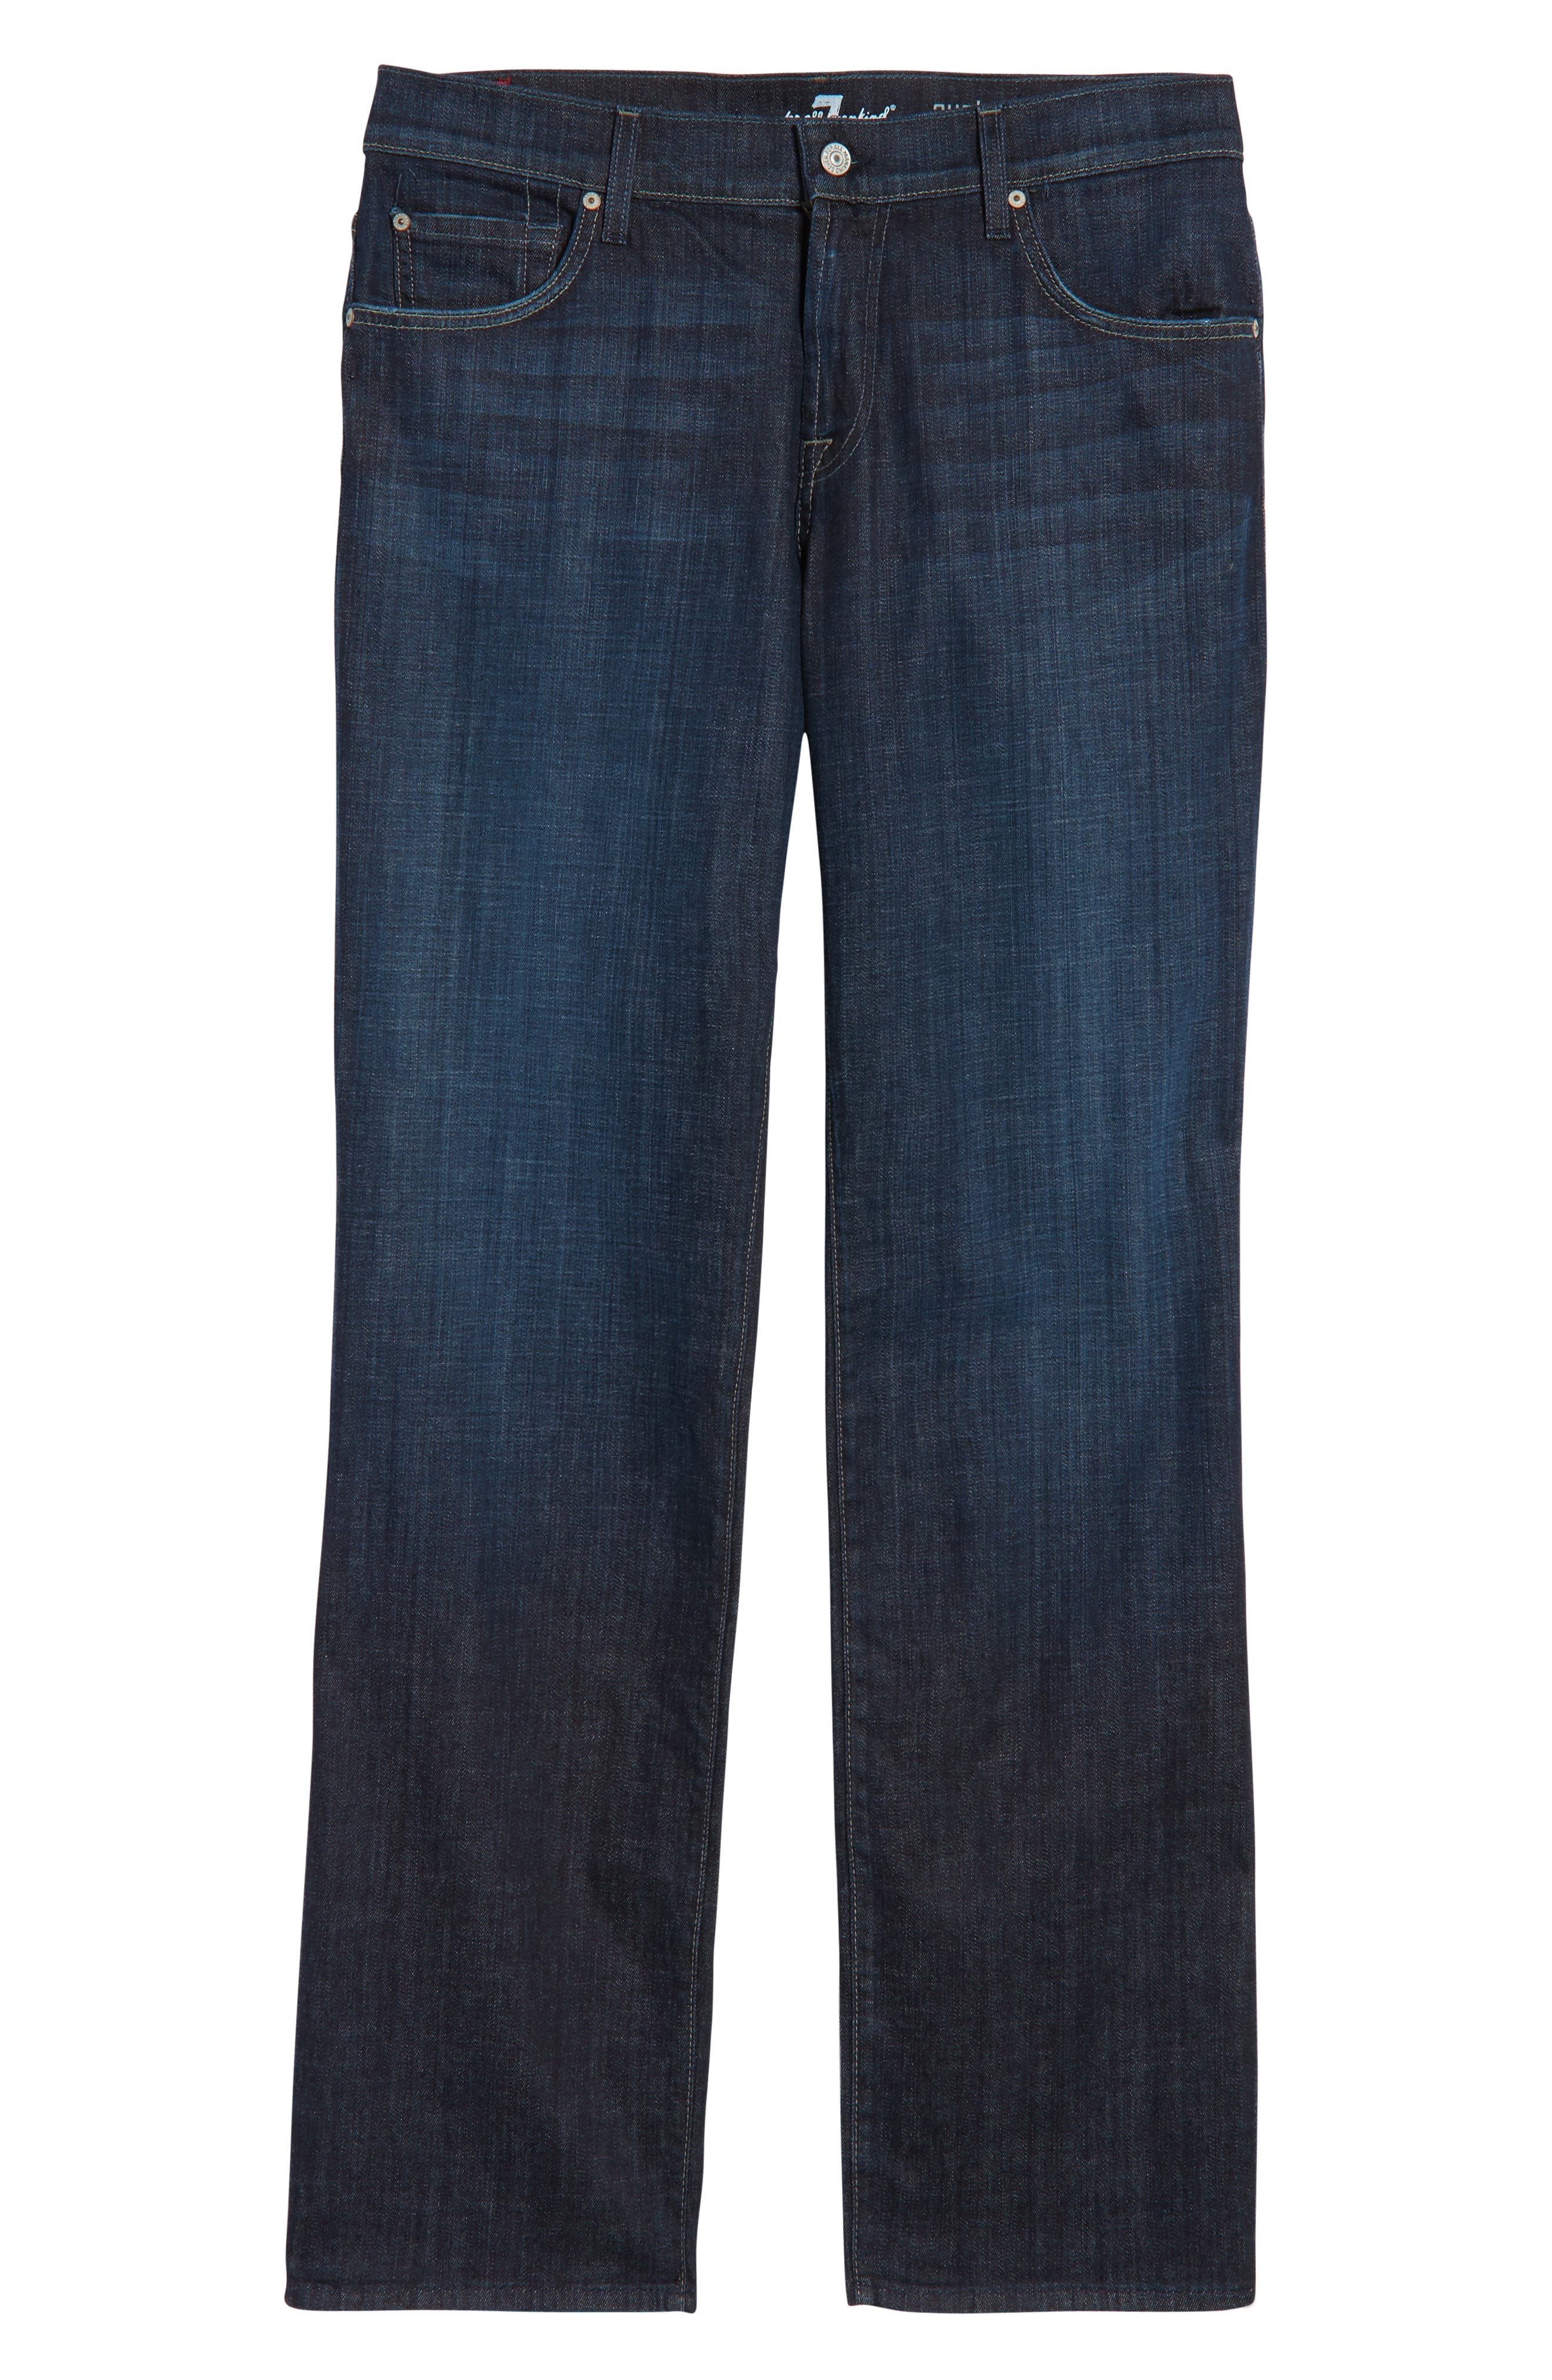 Austyn Relaxed Straight Leg Jeans,                         Main,                         color, 488